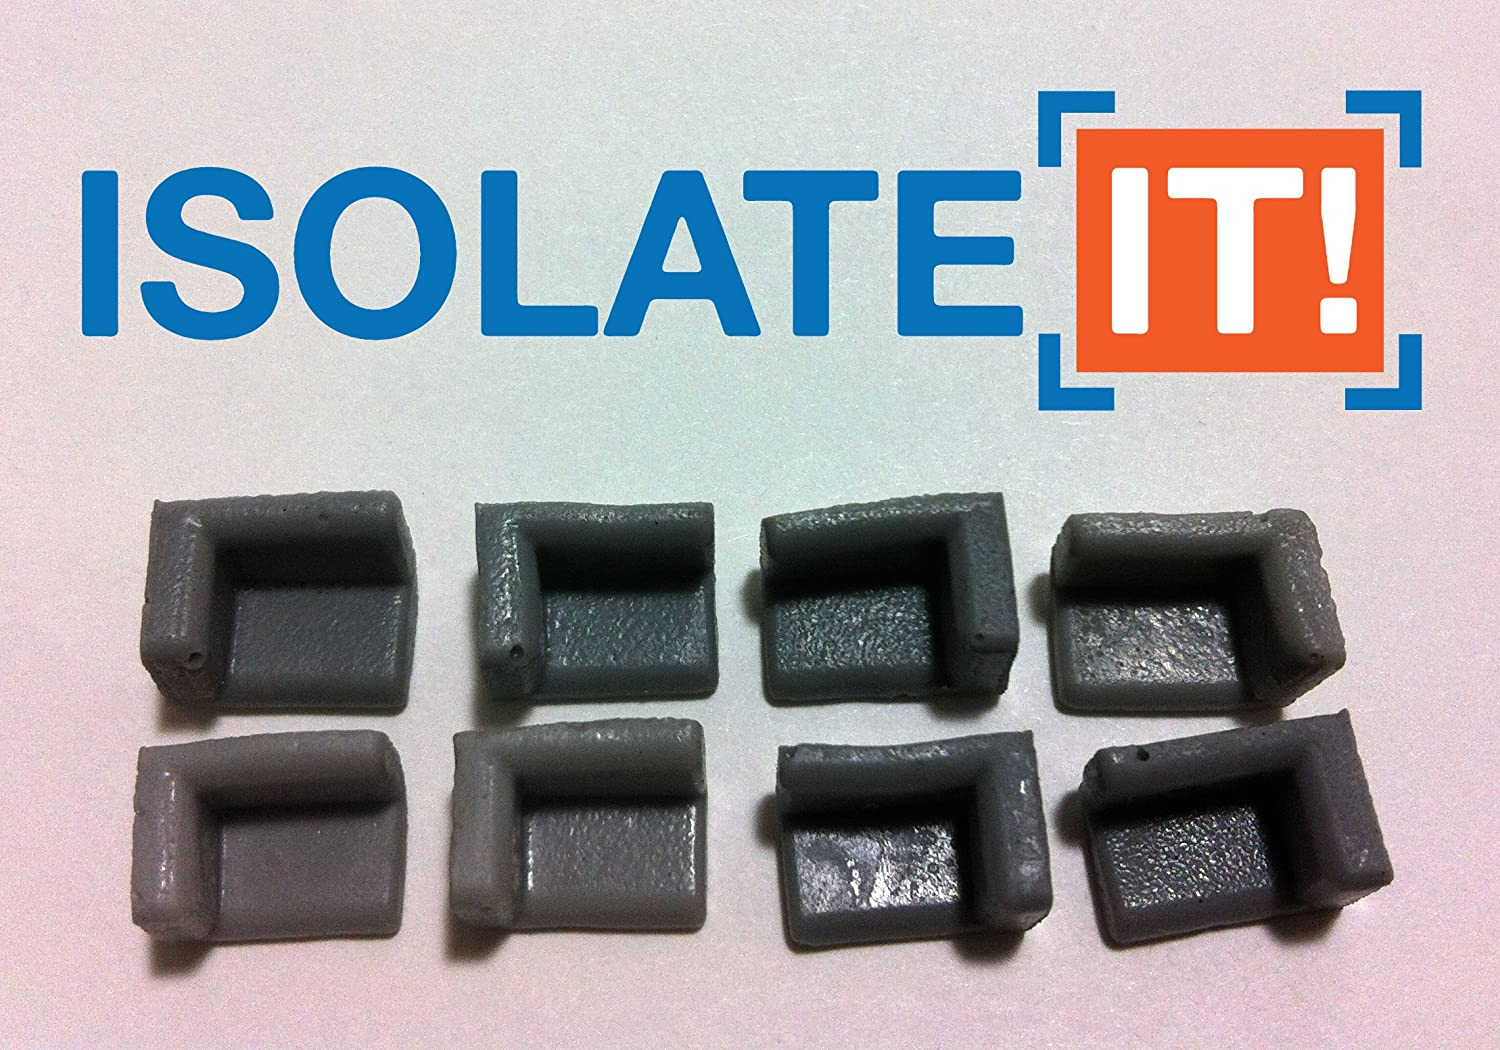 Sorbothane Hard Drive Shock Protection Corner Pad 1//10 Thick 50 Duro Isolate It 8 Pack